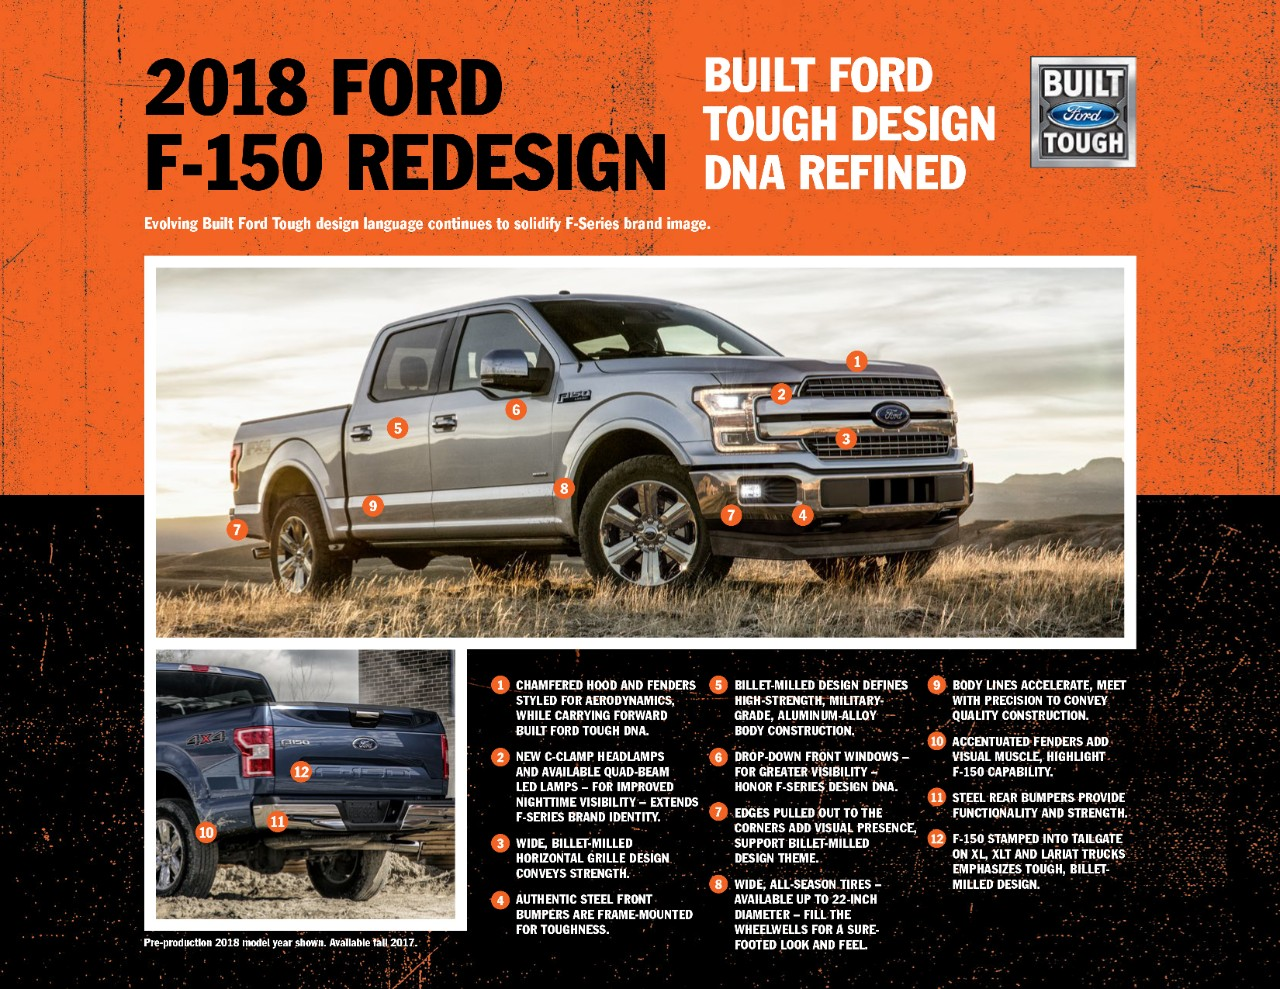 2018 Ford F-150 Design Emphasizes Proven Strengths - The News Wheel